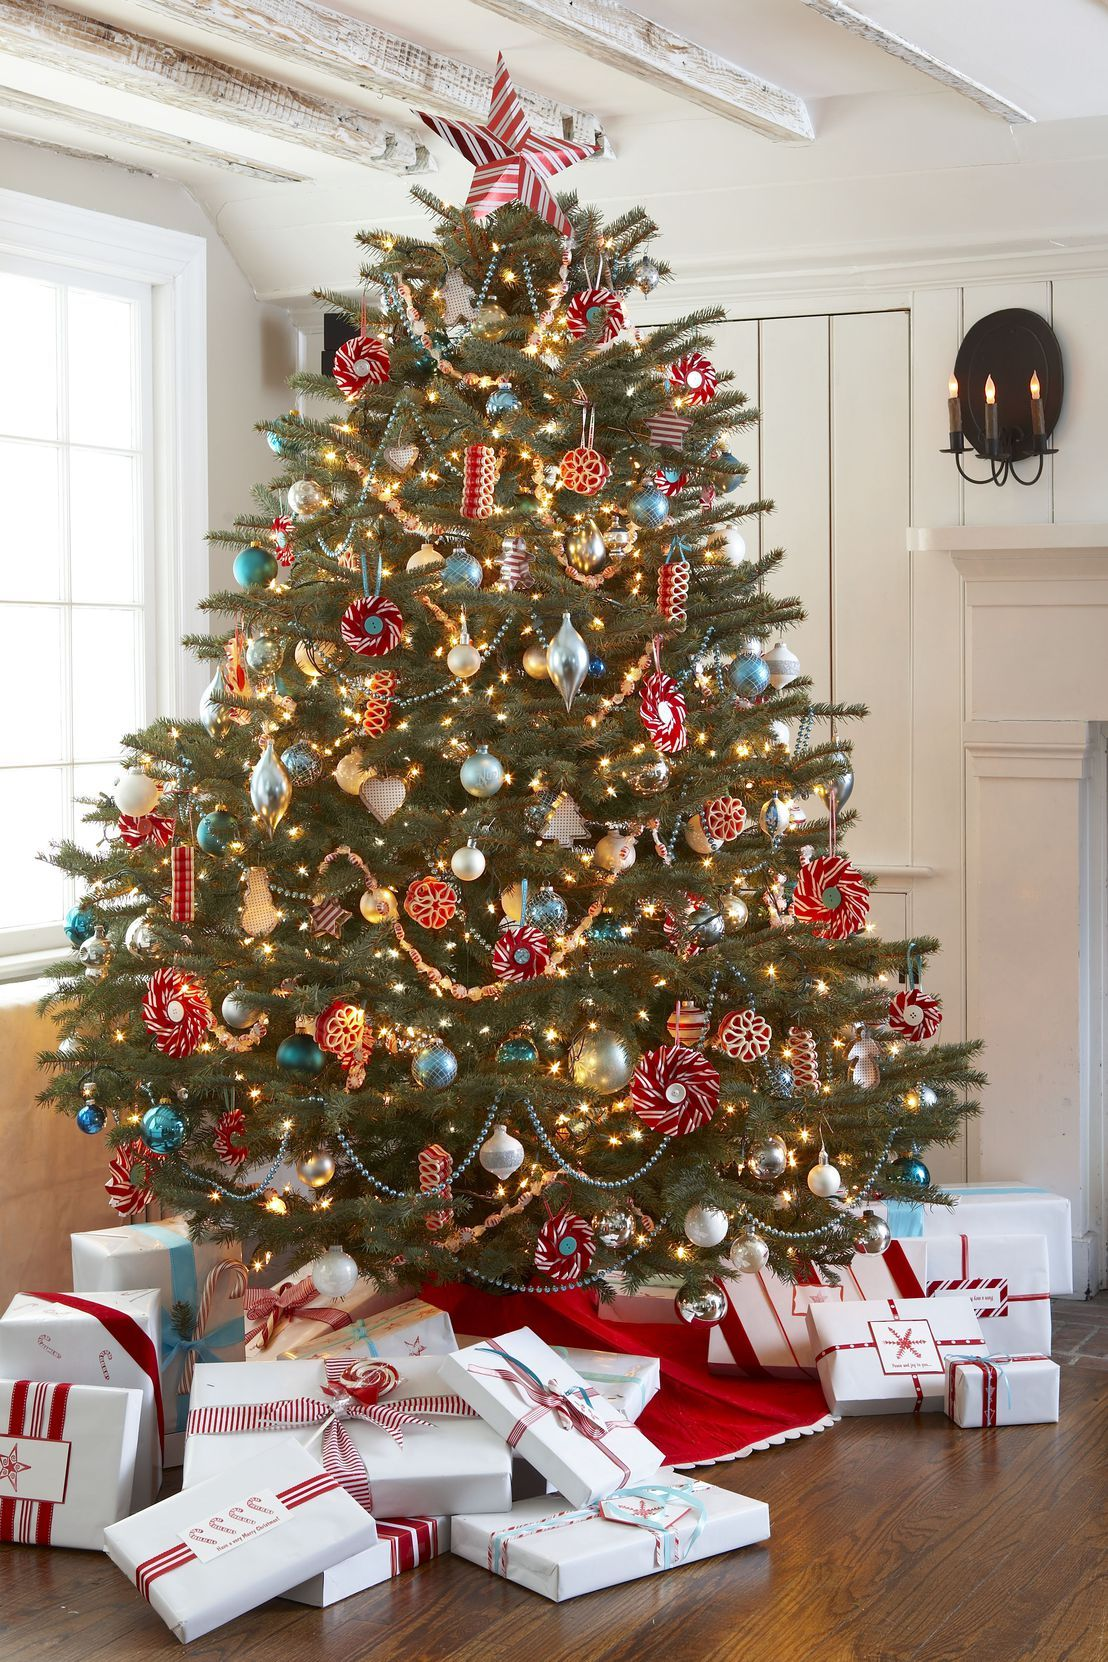 50 Christmas Tree Ideas That'll Really Make a Statement